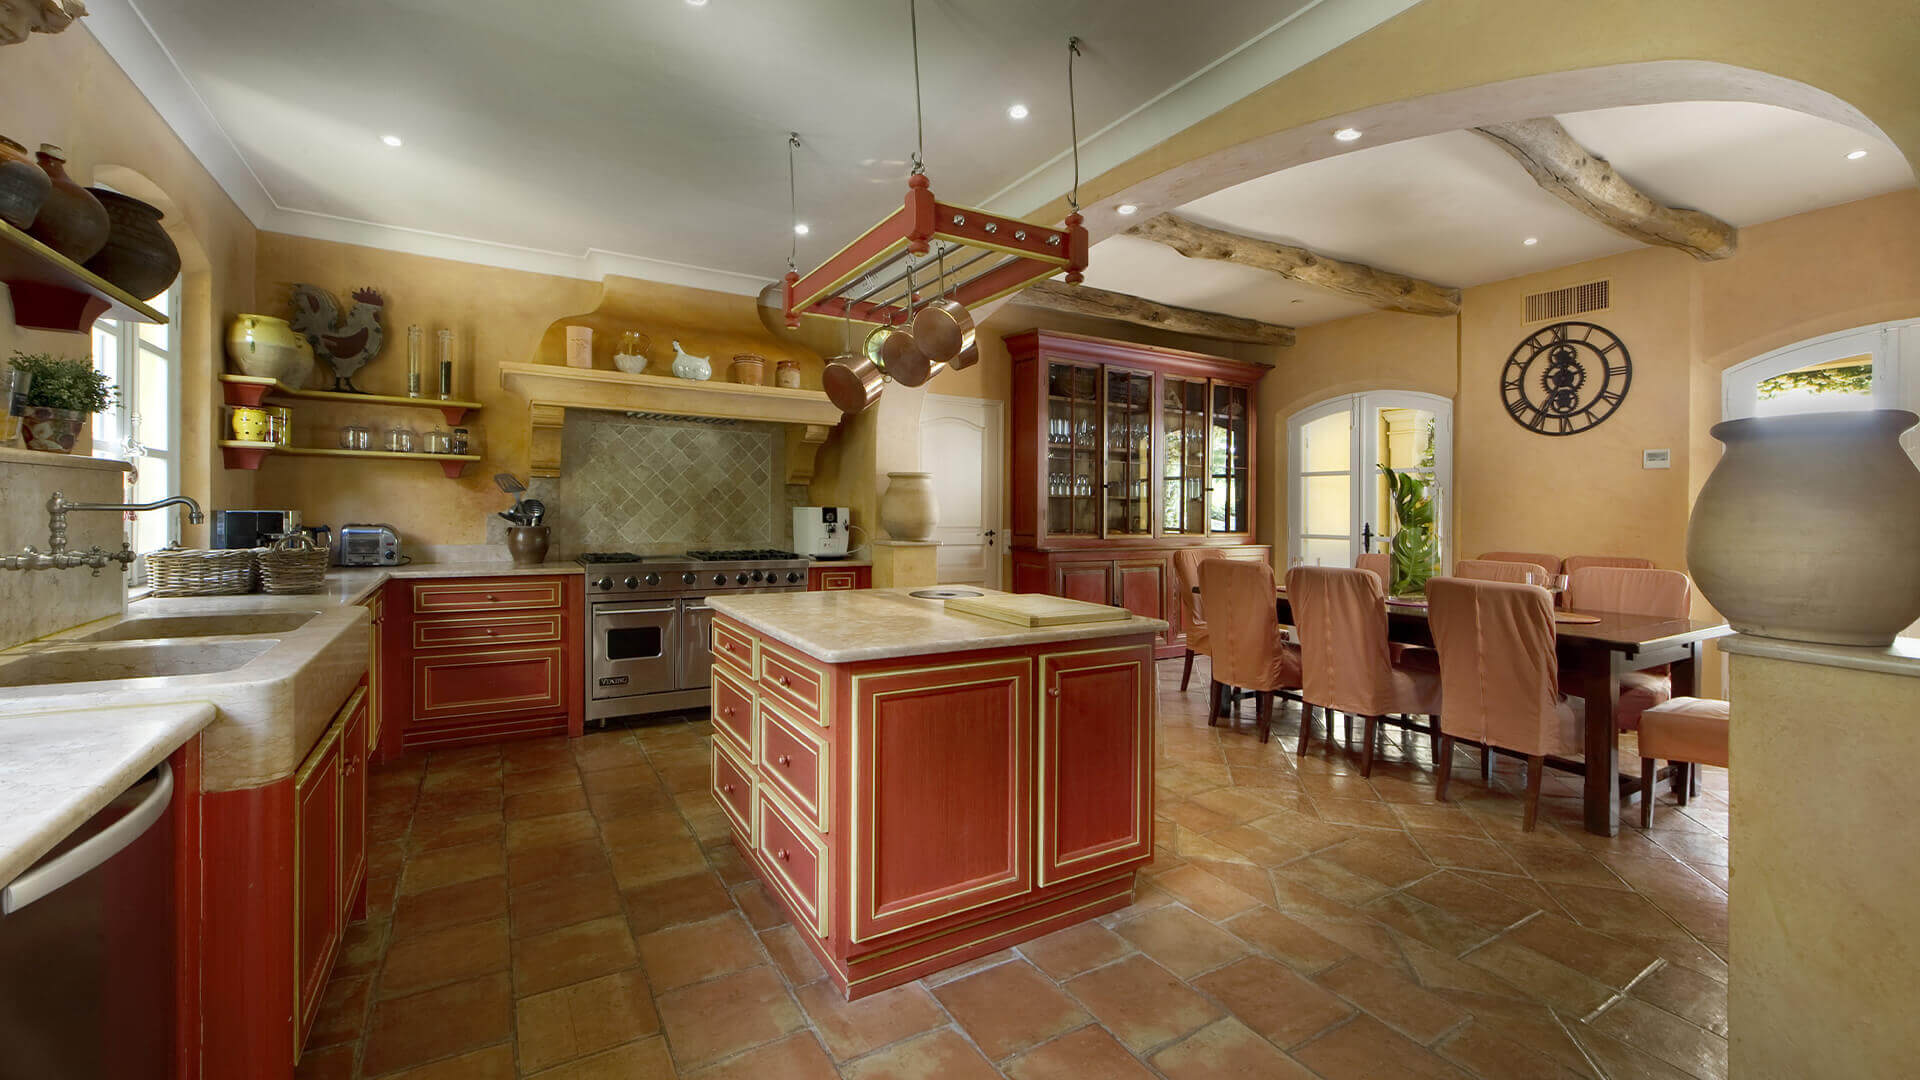 Saint Tropez Villa rustic tan kitchen and dining area